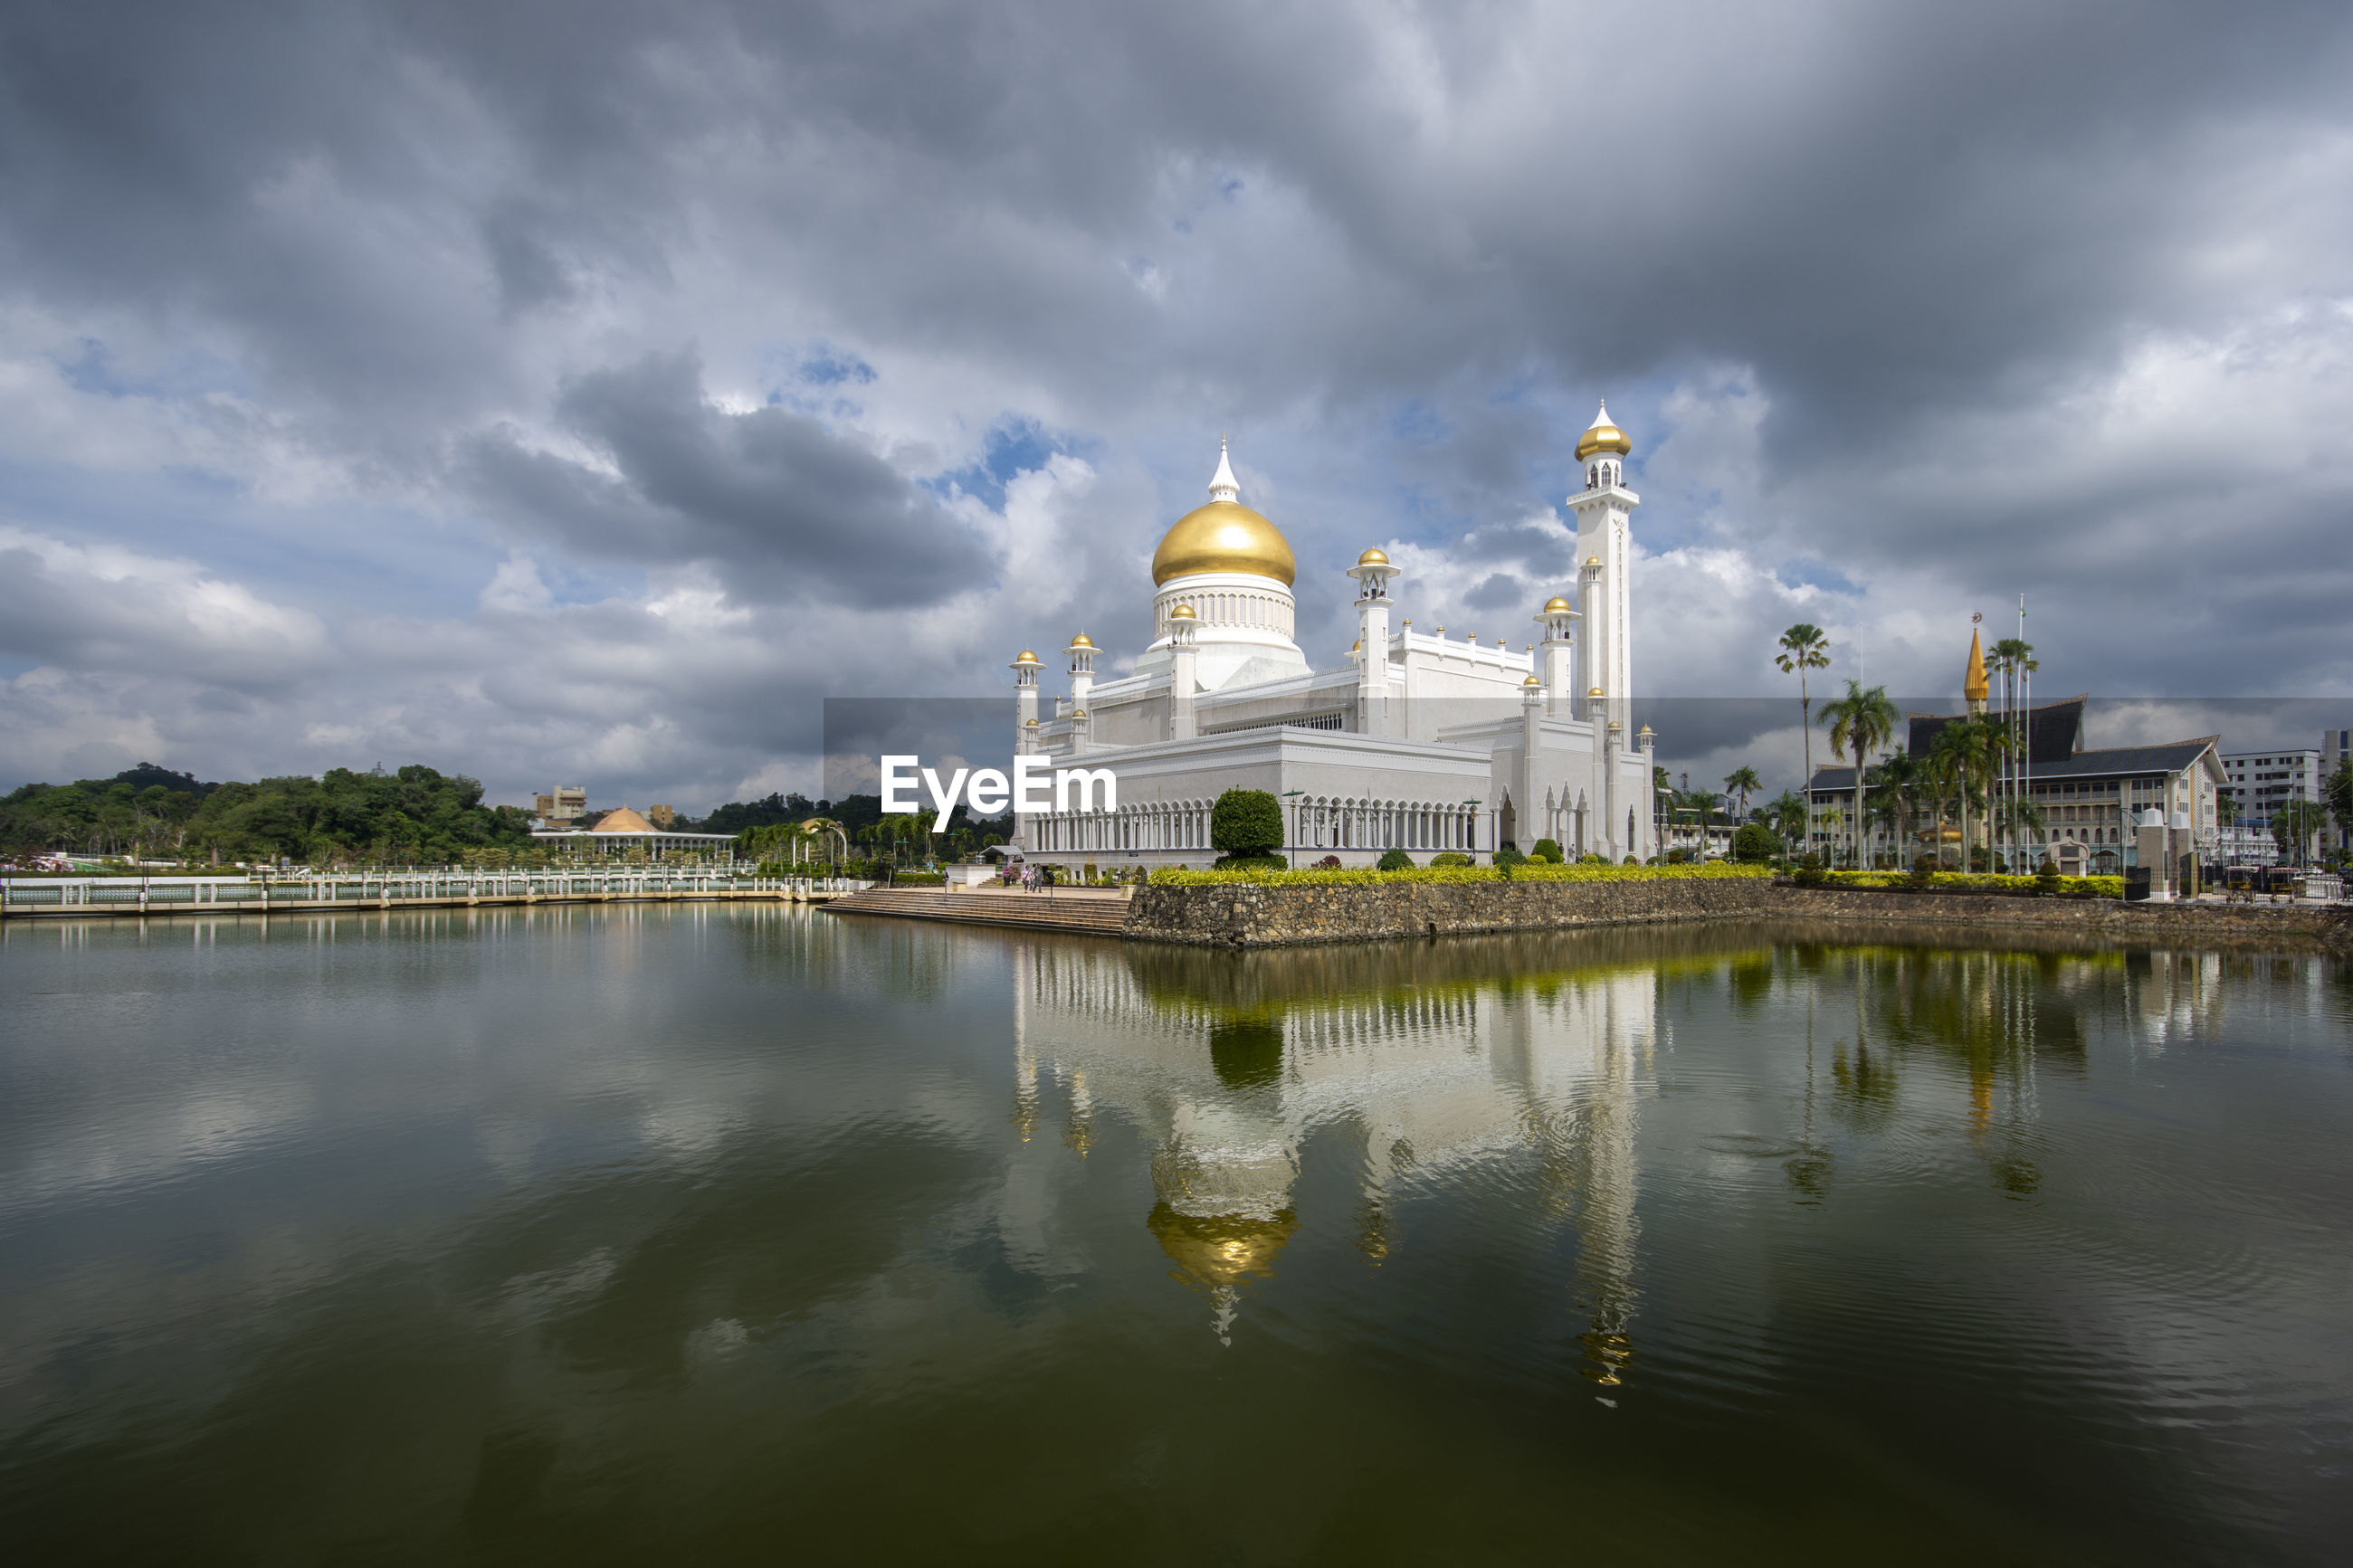 Sultan omar ali saifuddien mosque and reflection against cloudy sky